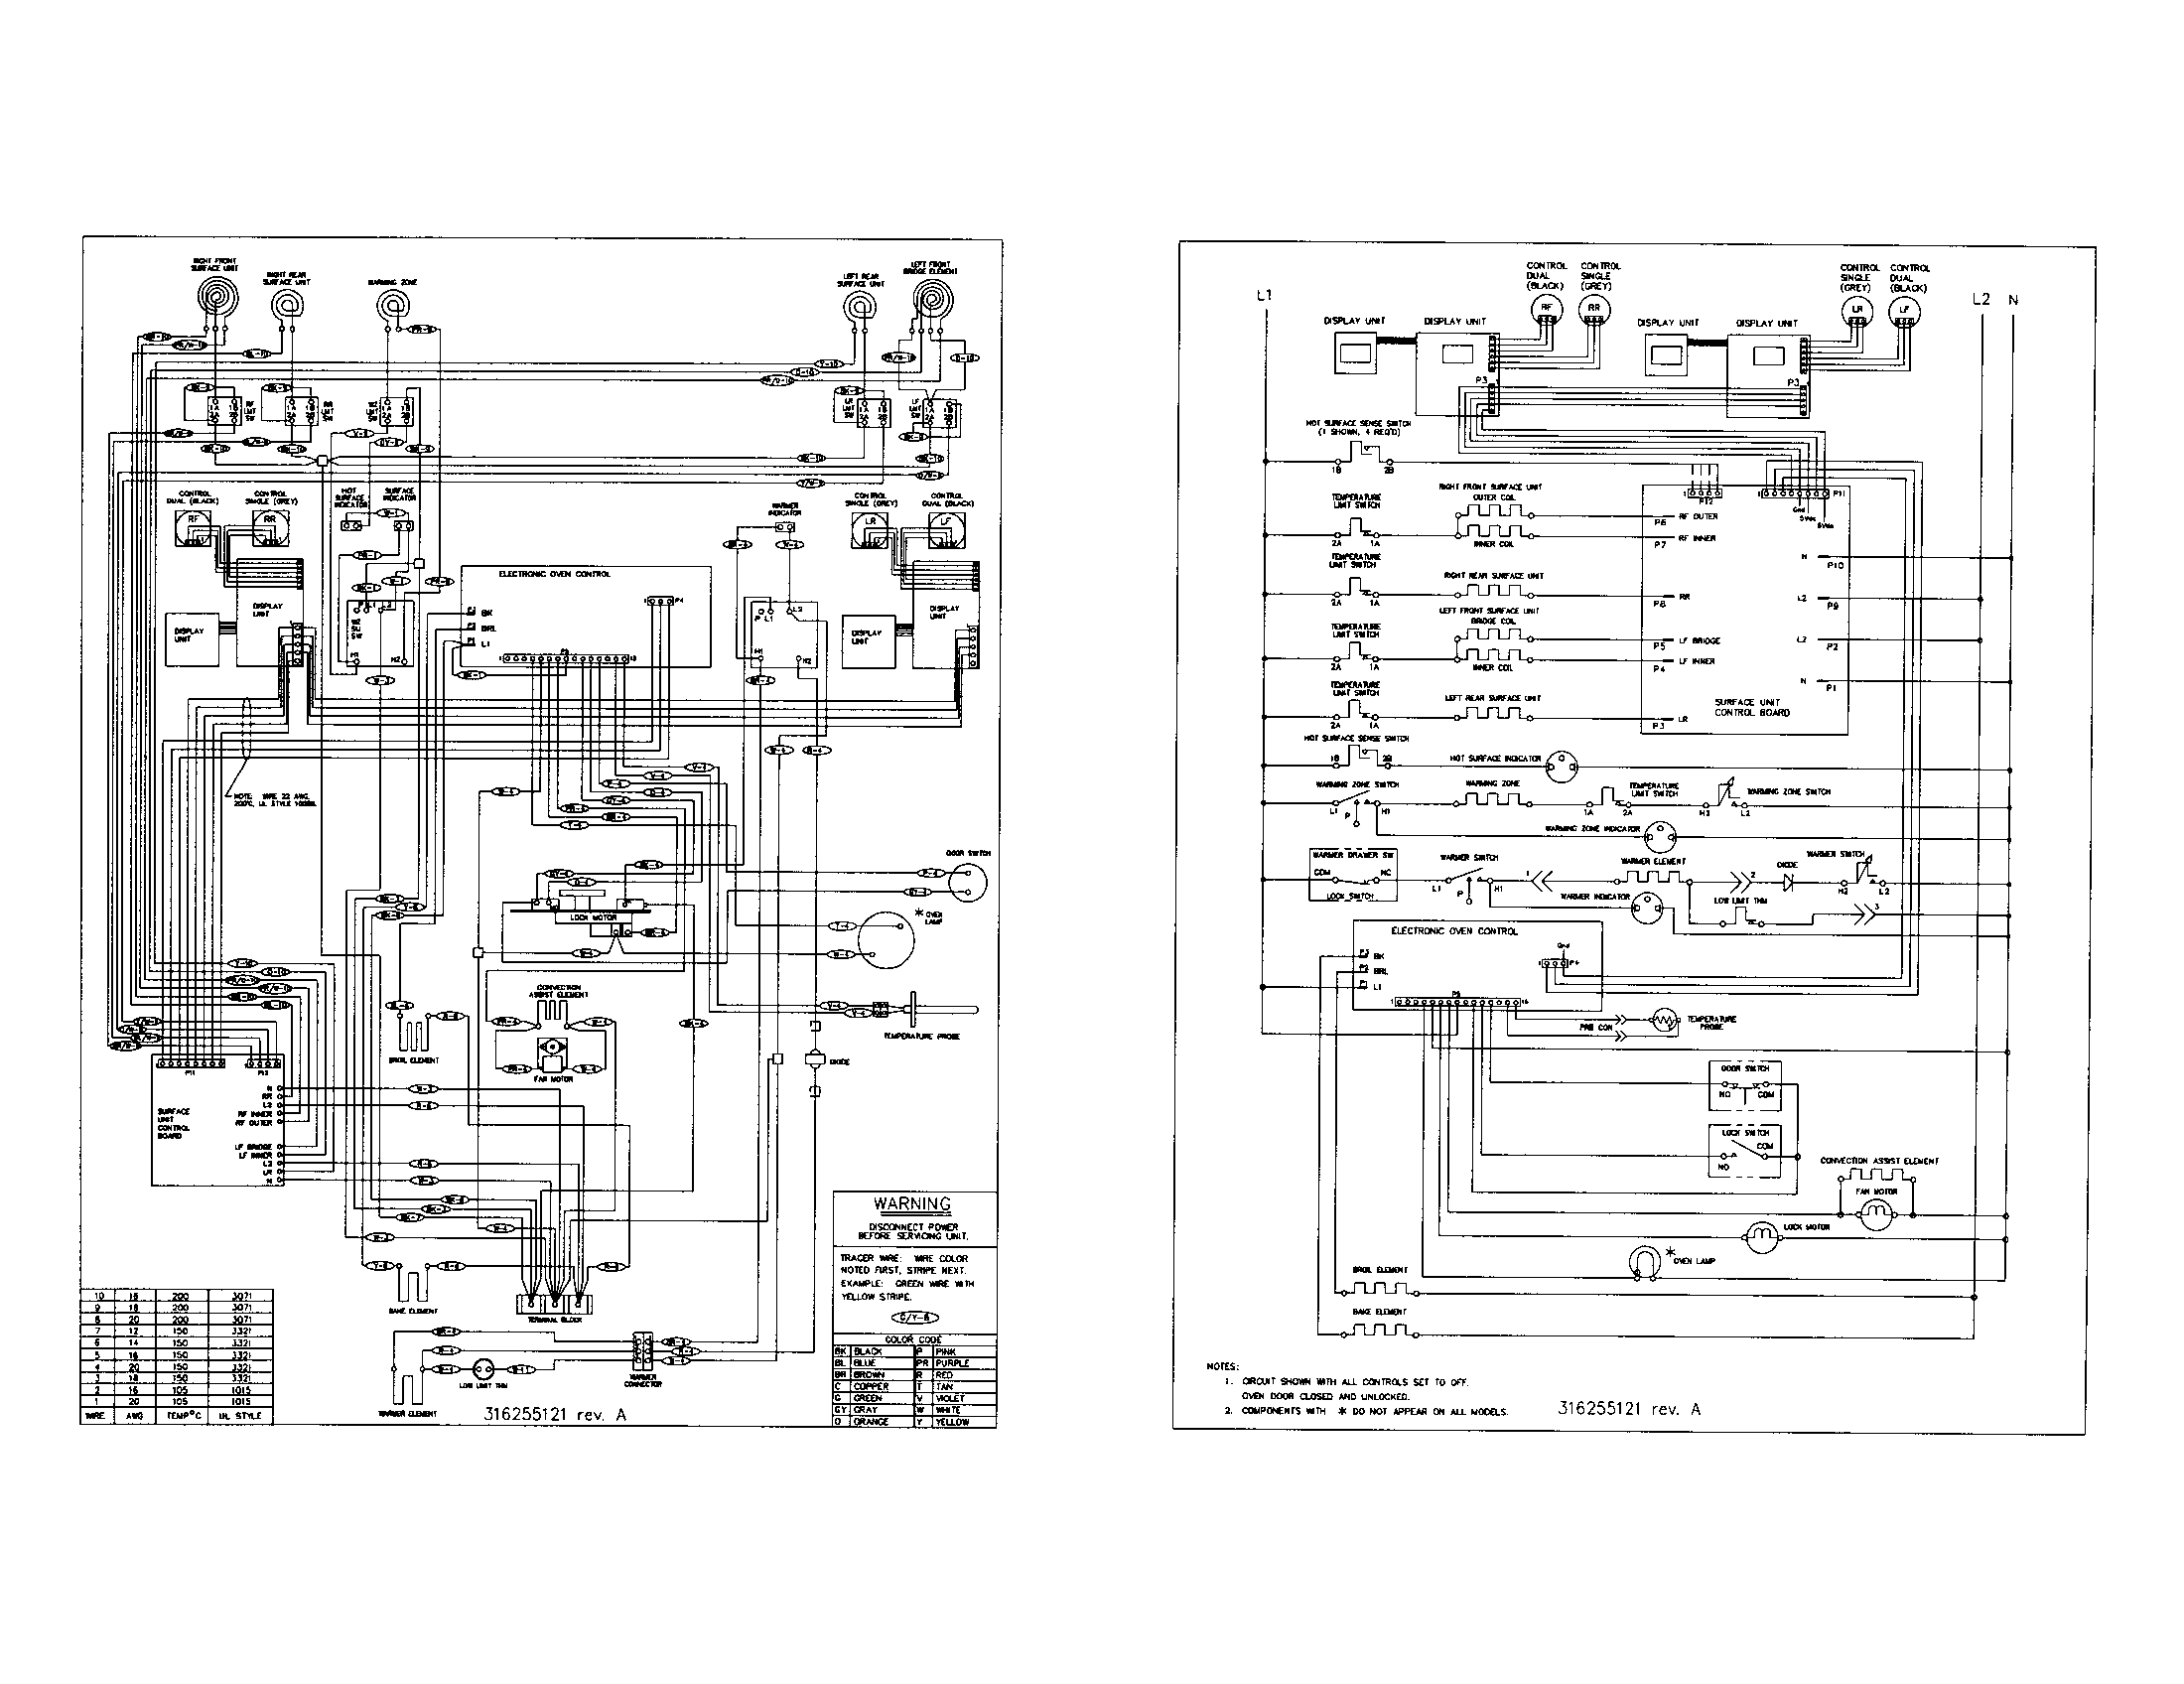 medium resolution of general electric motor wiring diagrams on general download wirning wiring diagram parts resize